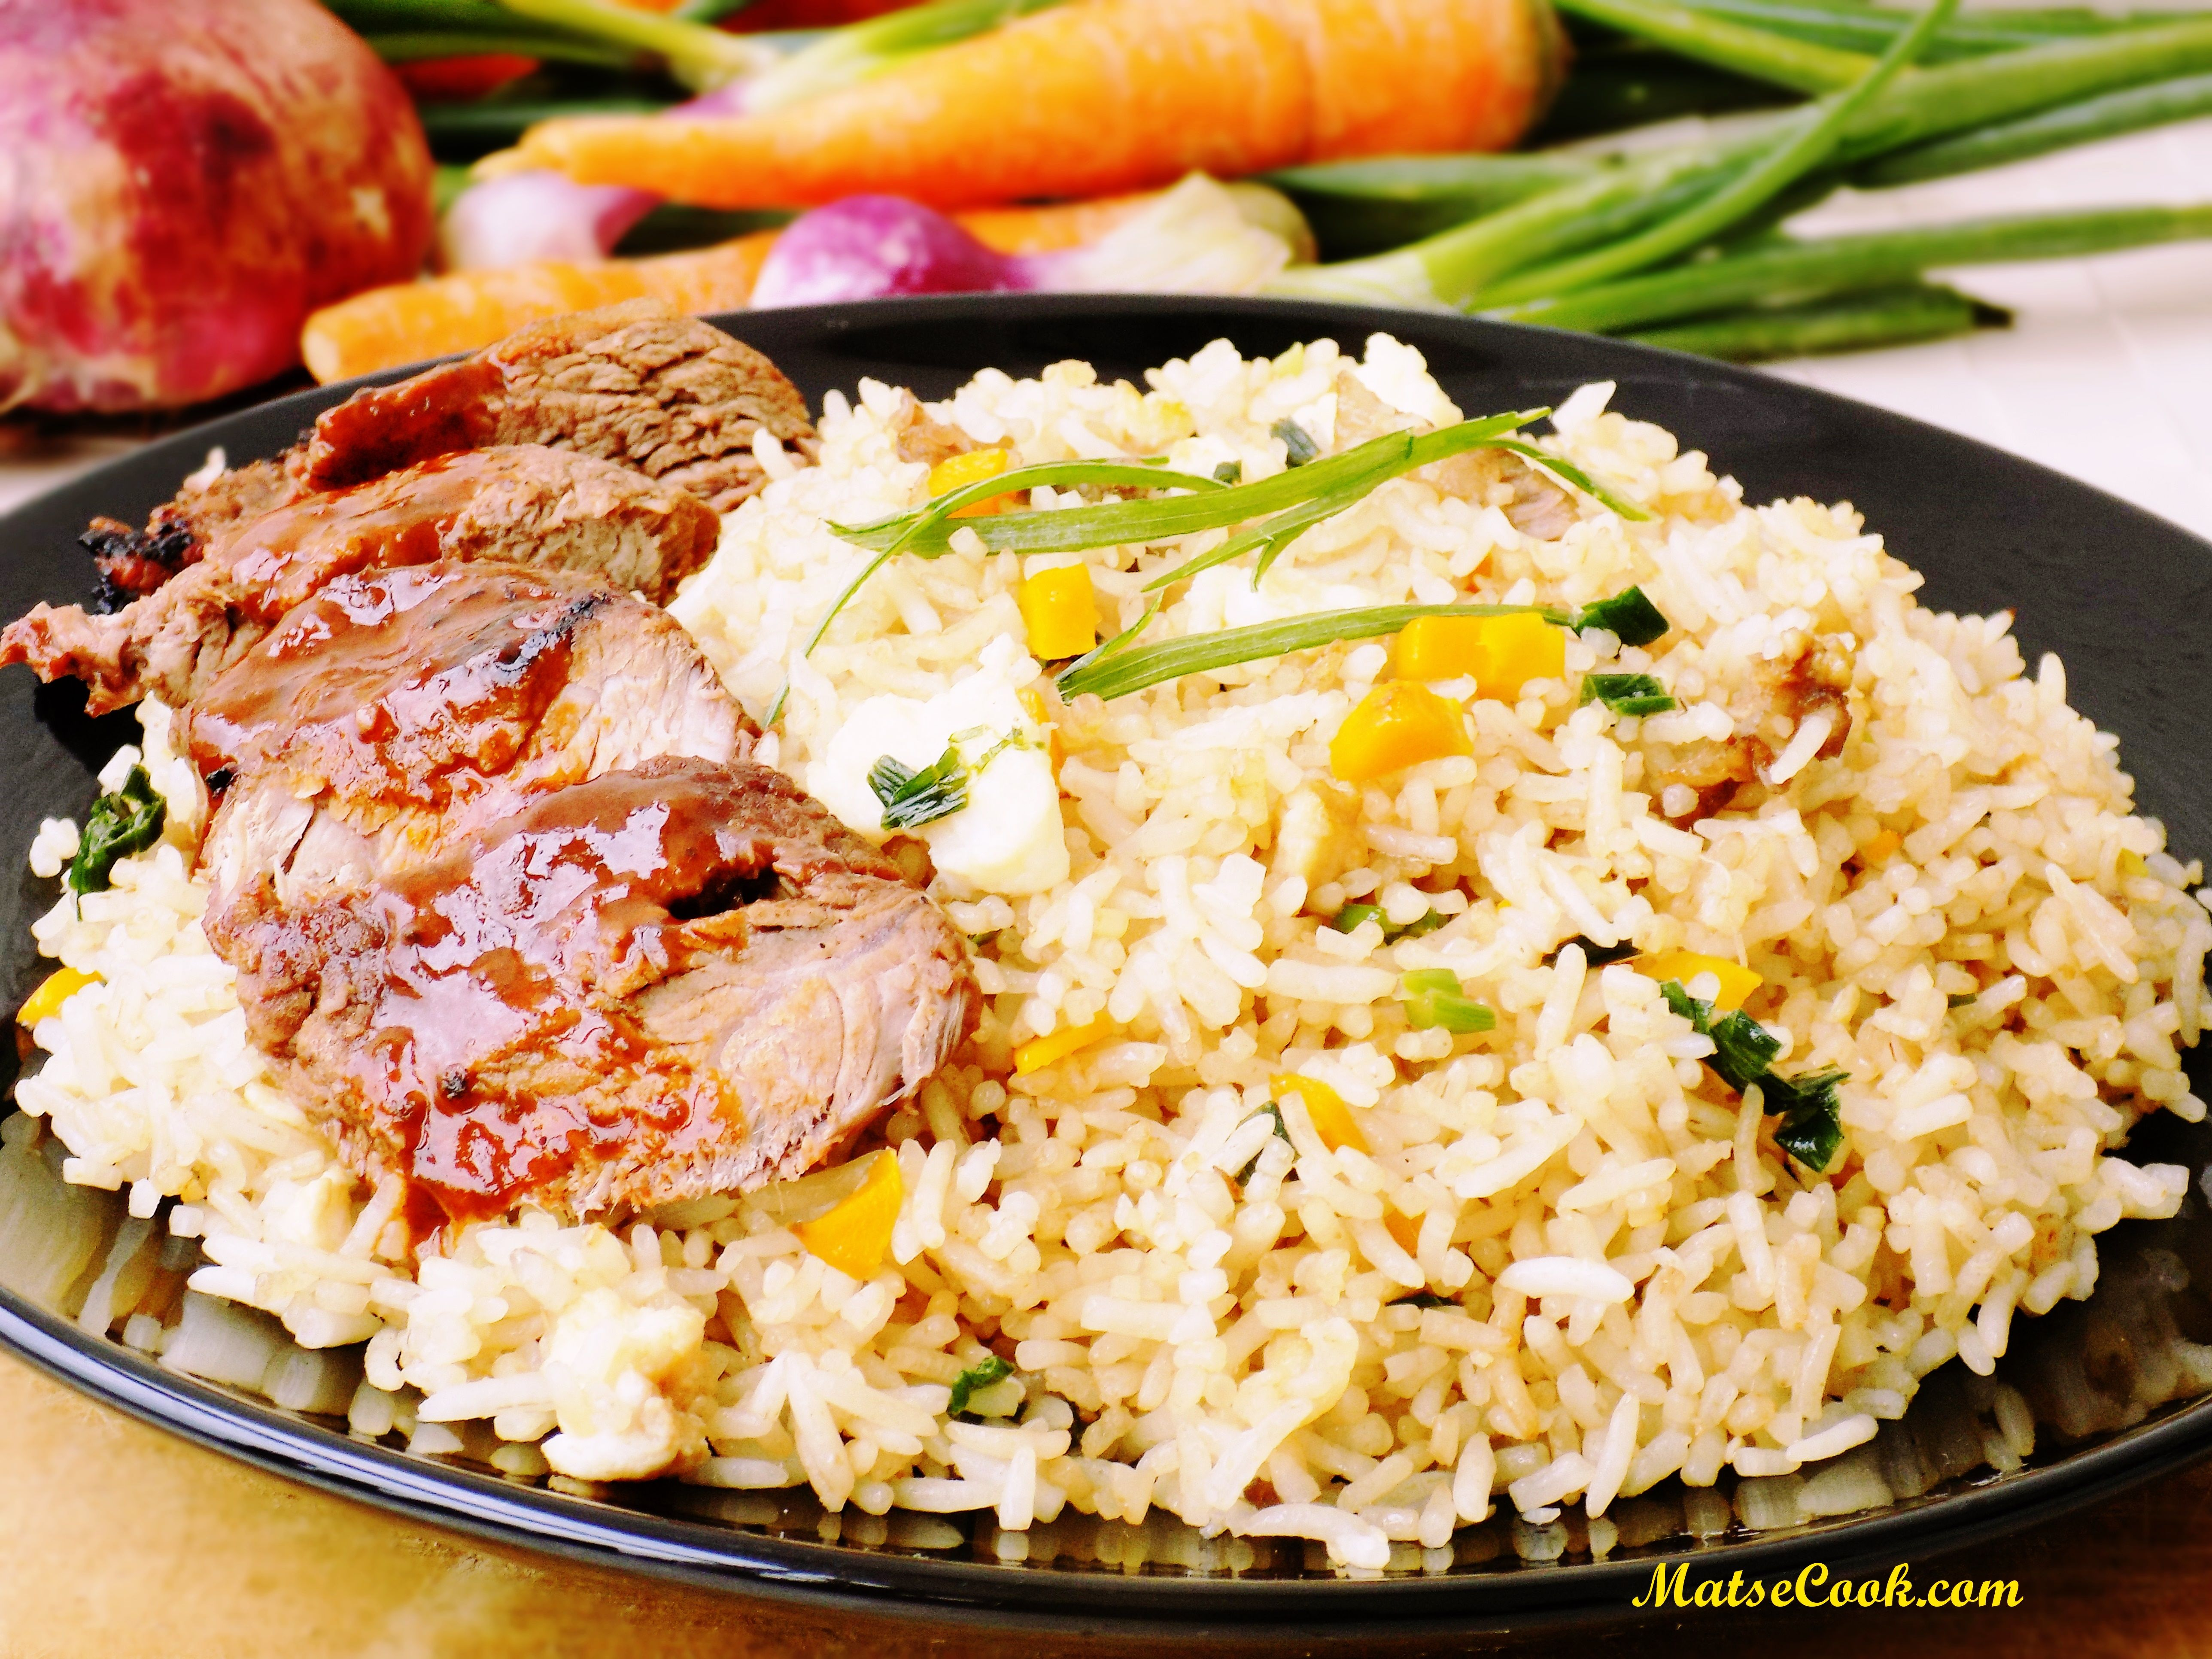 The easy basmati fried rice whats for lunchdinner pinterest the easy basmati fried rice ccuart Images